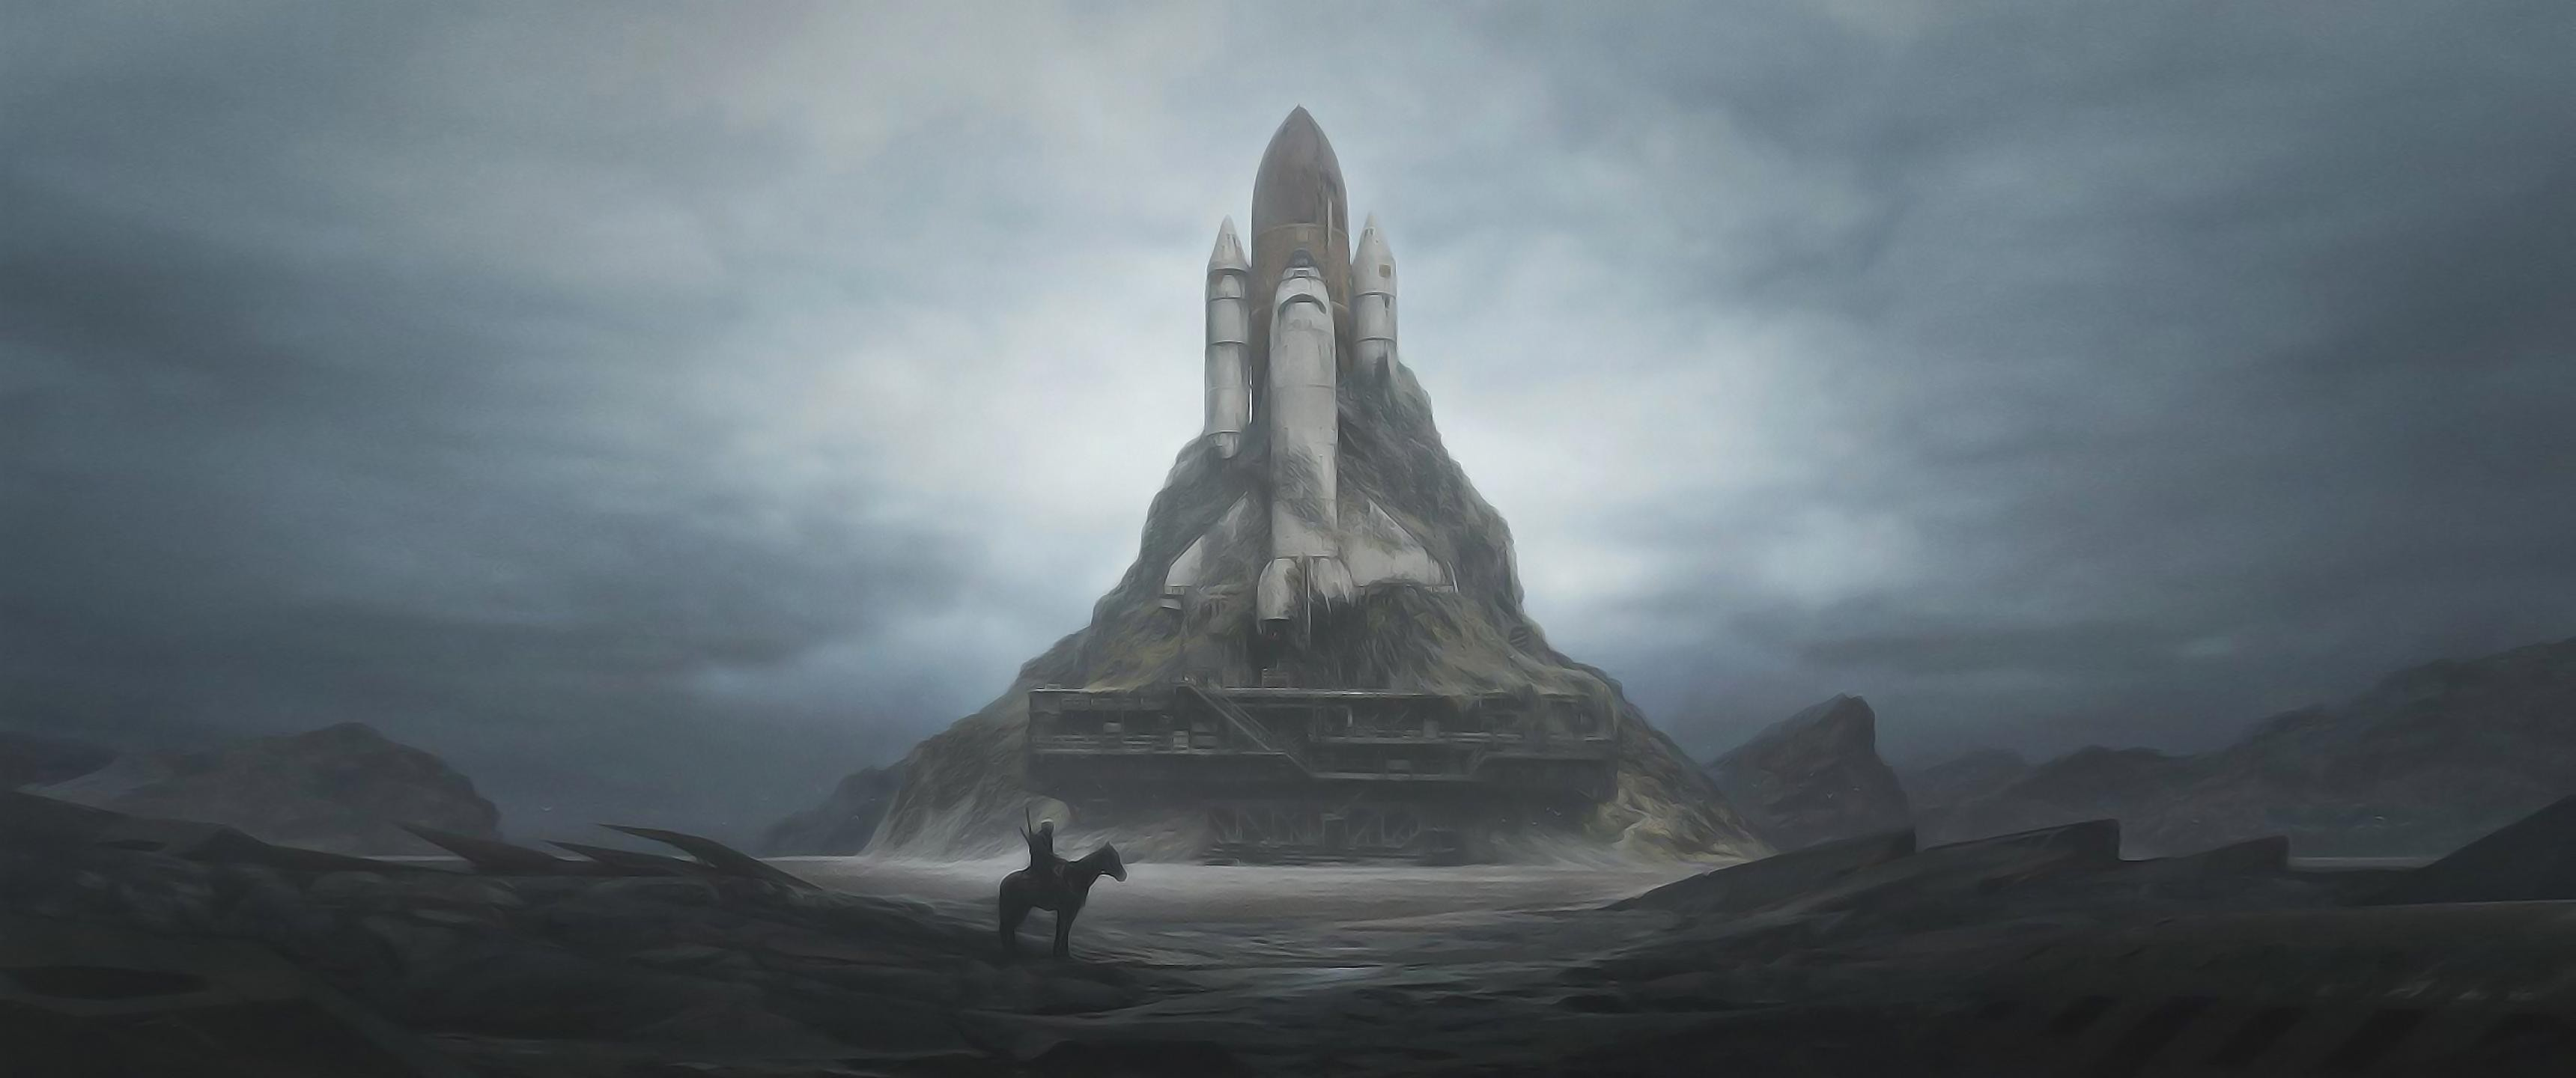 3440x1440 Sci Fi Post Apocalyptic Space Shuttle Landscape HD 3440x1440